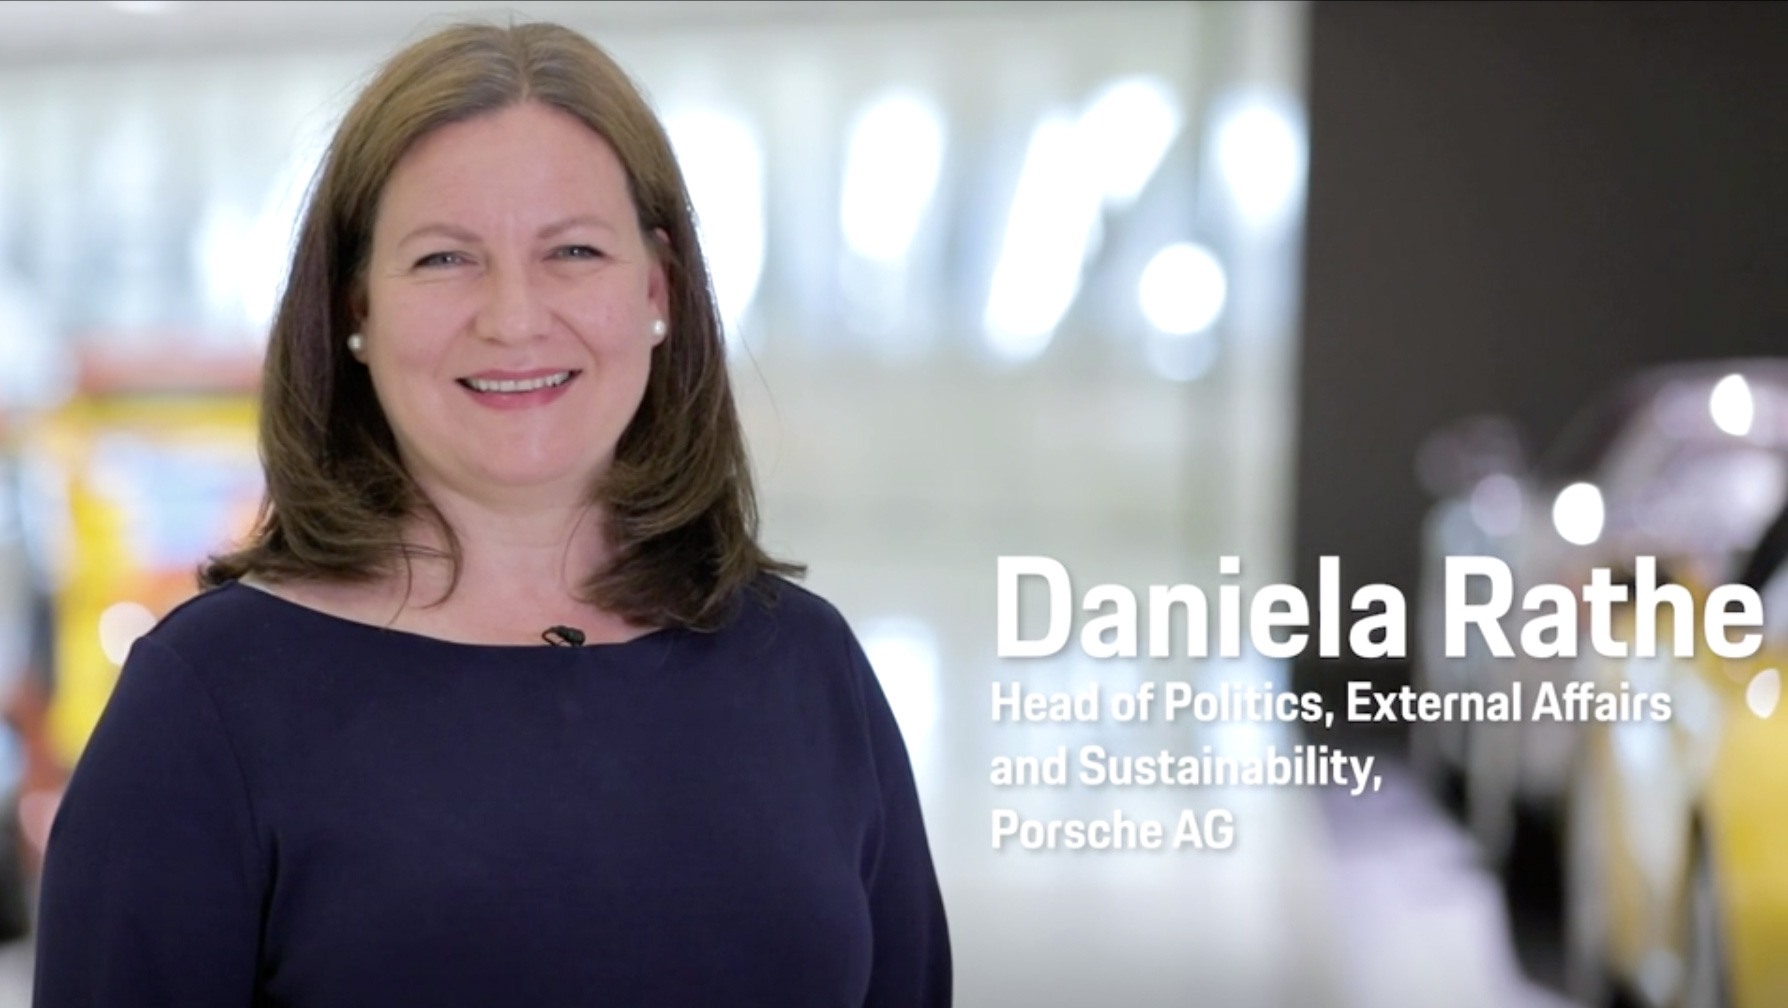 Daniela Rathe, Head of Politics, External Affairs and Sustainability, about the new ideas competition